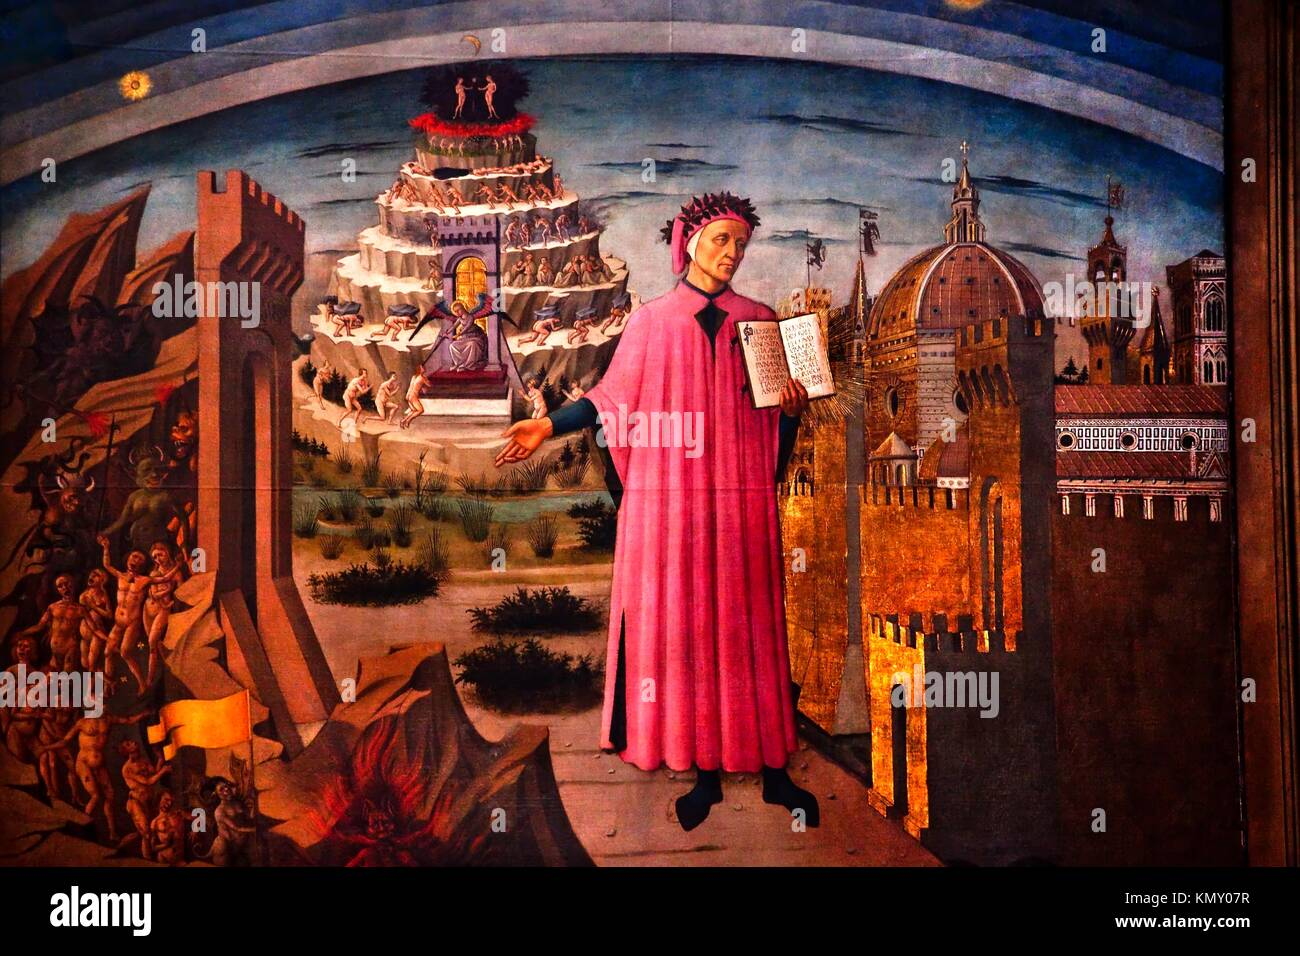 divine comedy and dante The divine comedy is a long narrative poem by dante alighieri, begun c 1308  and completed in 1320, a year before his death in 1321 it is widely considered to .